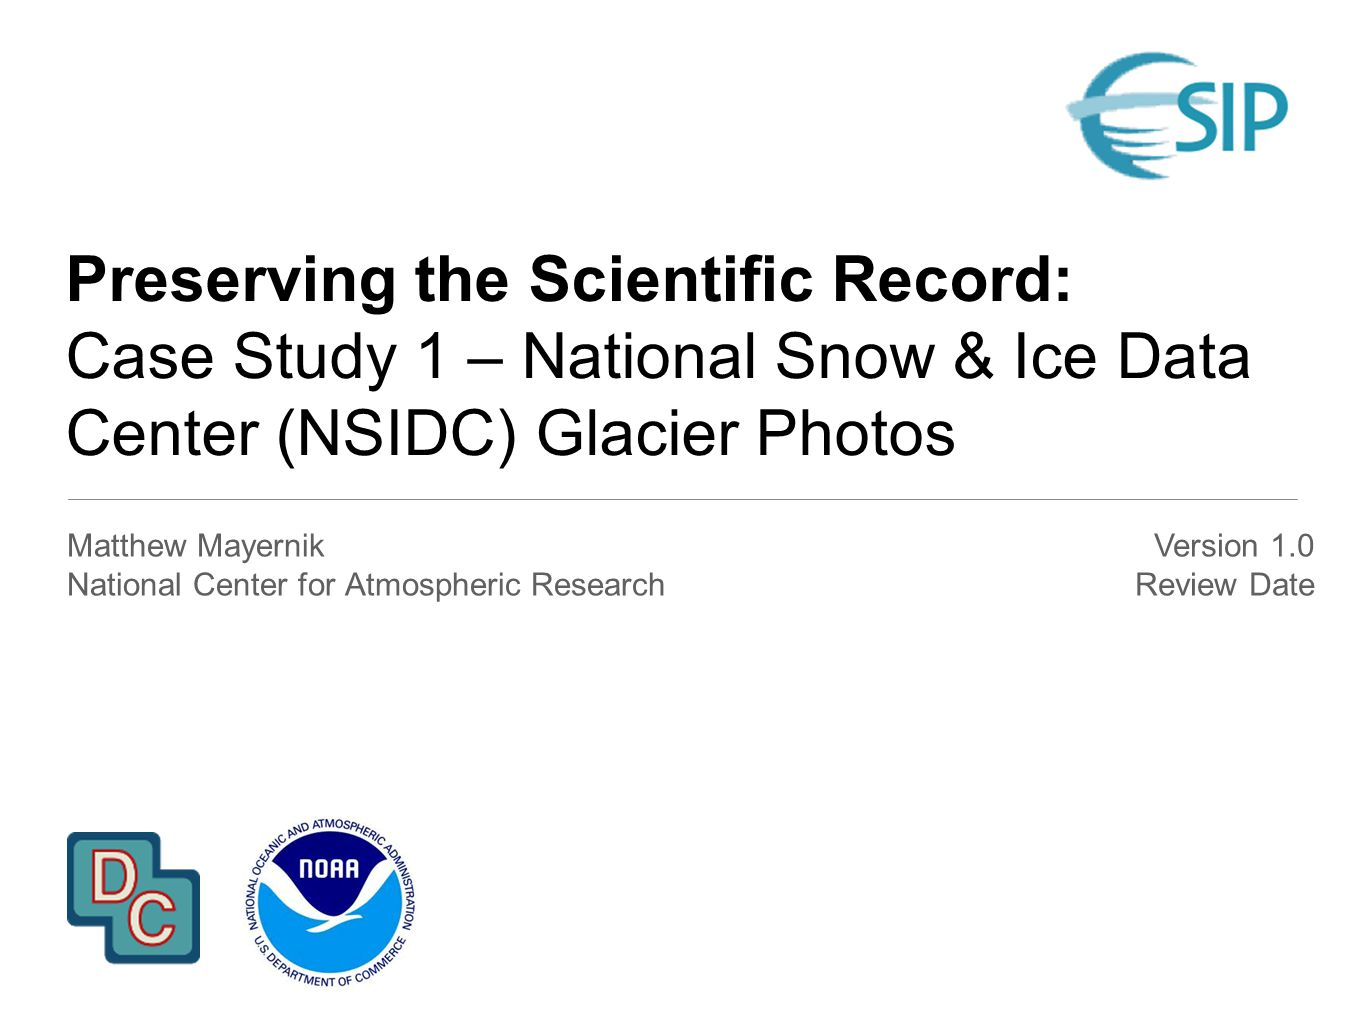 Preserving the Scientific Record: Case Study 1 – National Snow & Ice Data Center (NSIDC) Glacier Photos Matthew Mayernik National Center for Atmospheric Research Version 1.0 Review Date